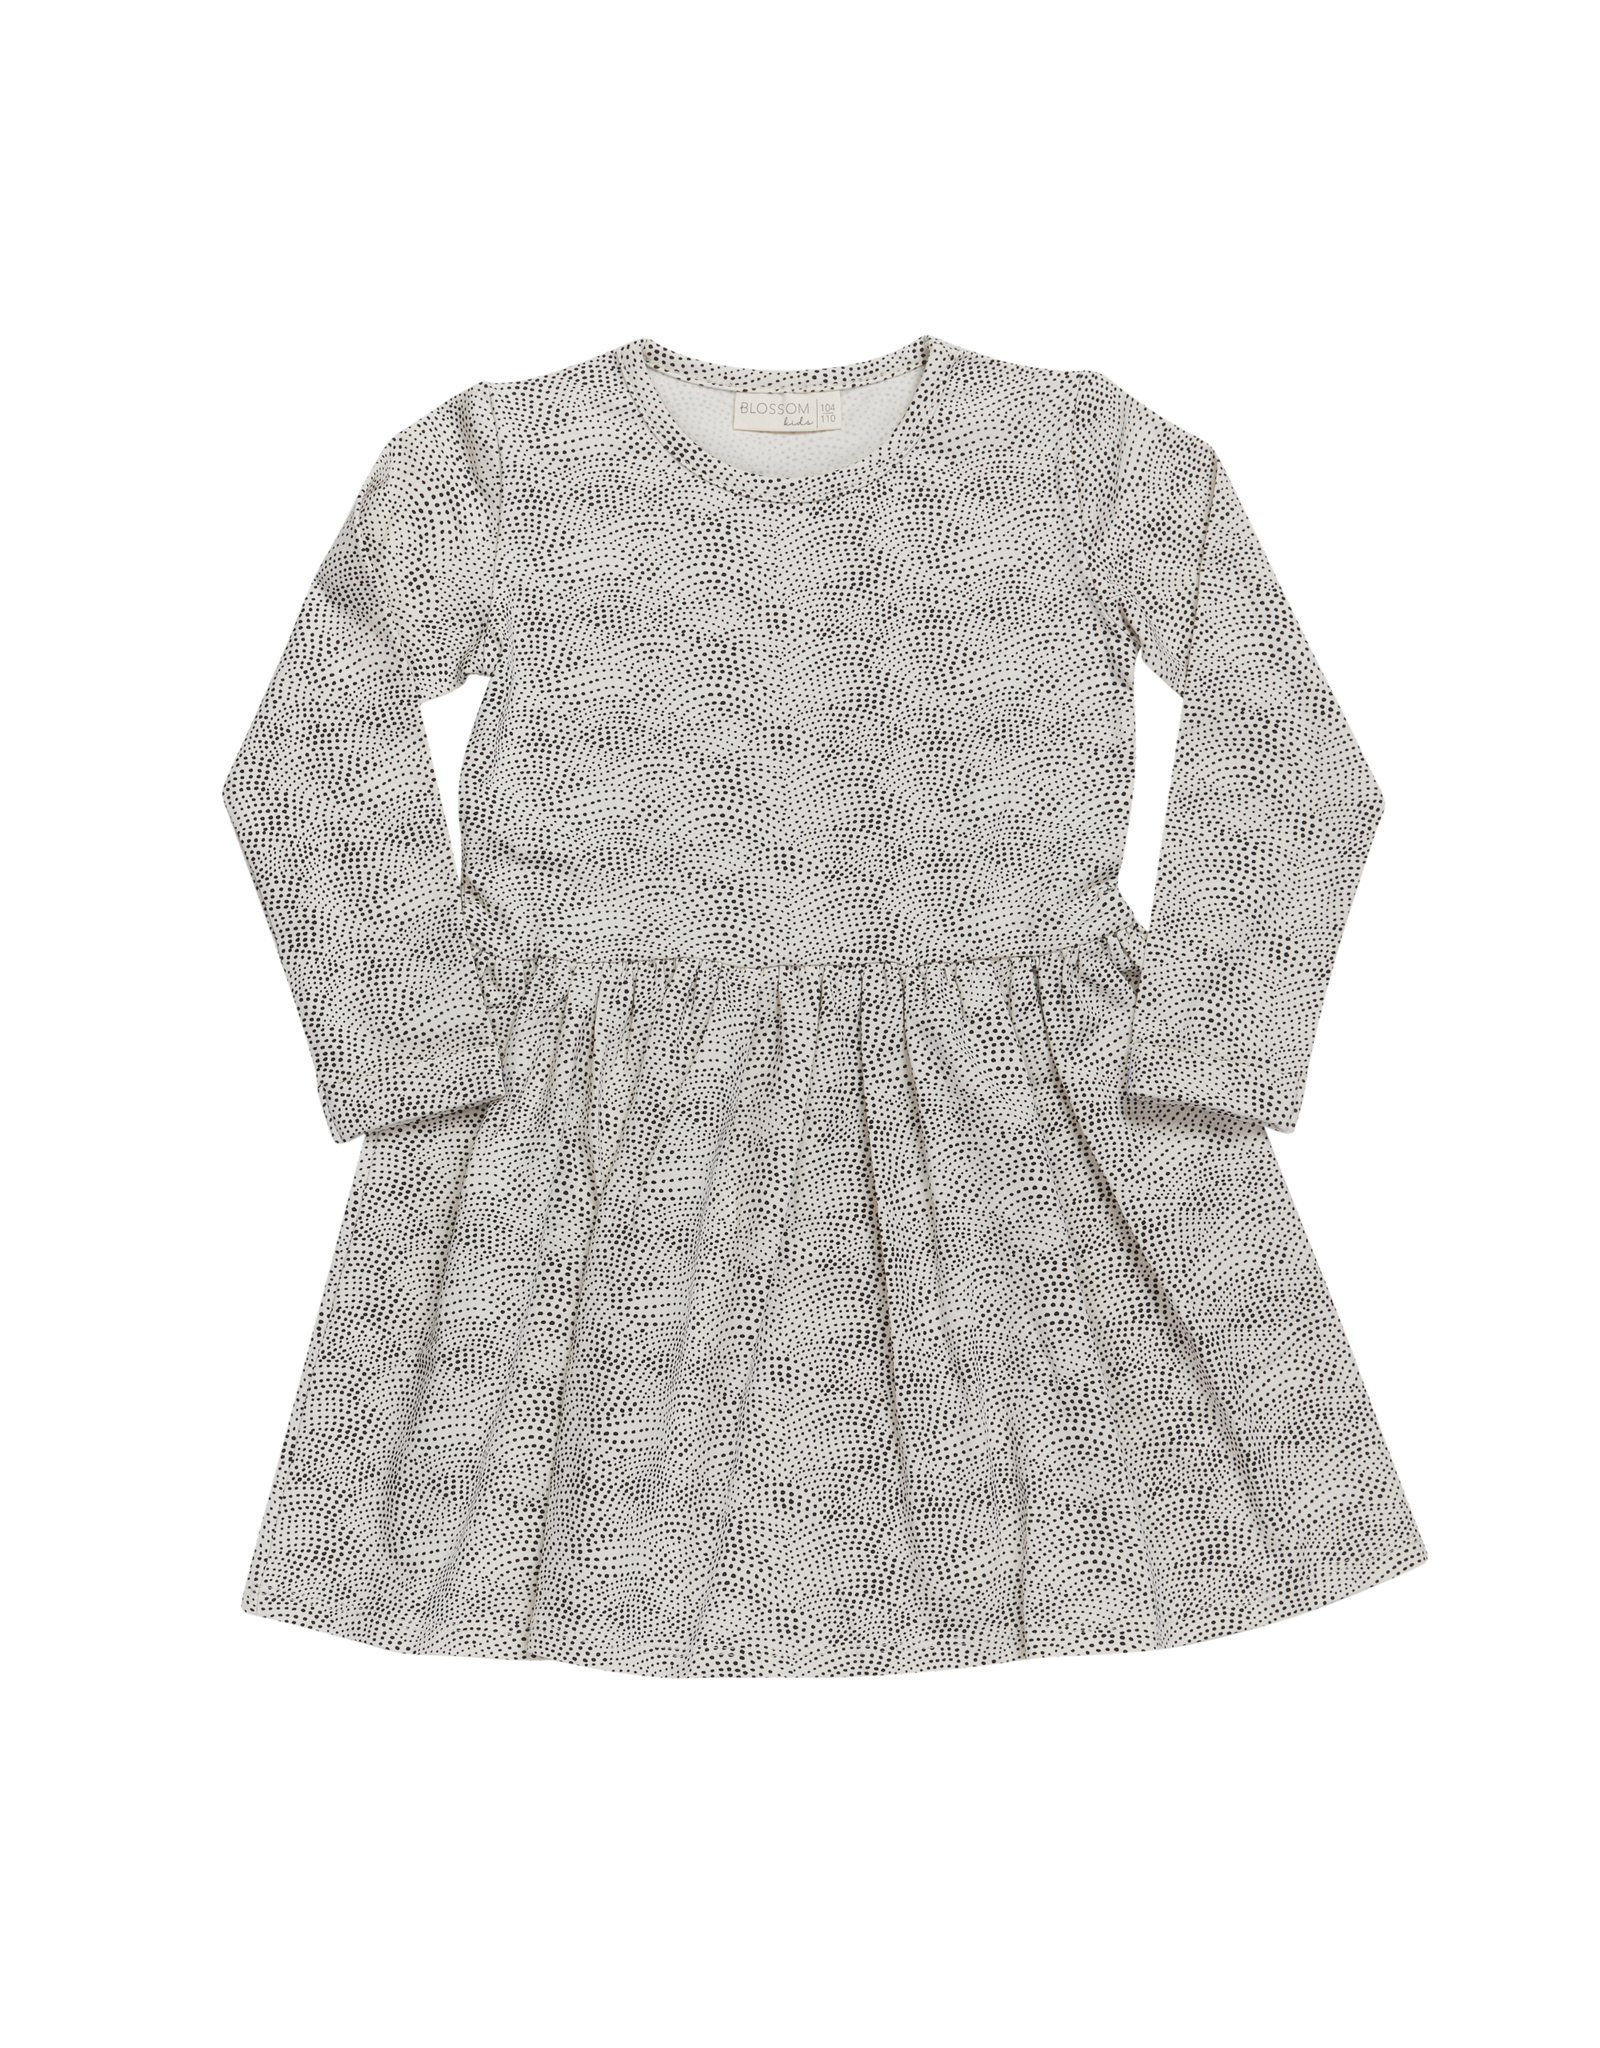 Blossom Kids Dress dotted waves - Chocolate Brown